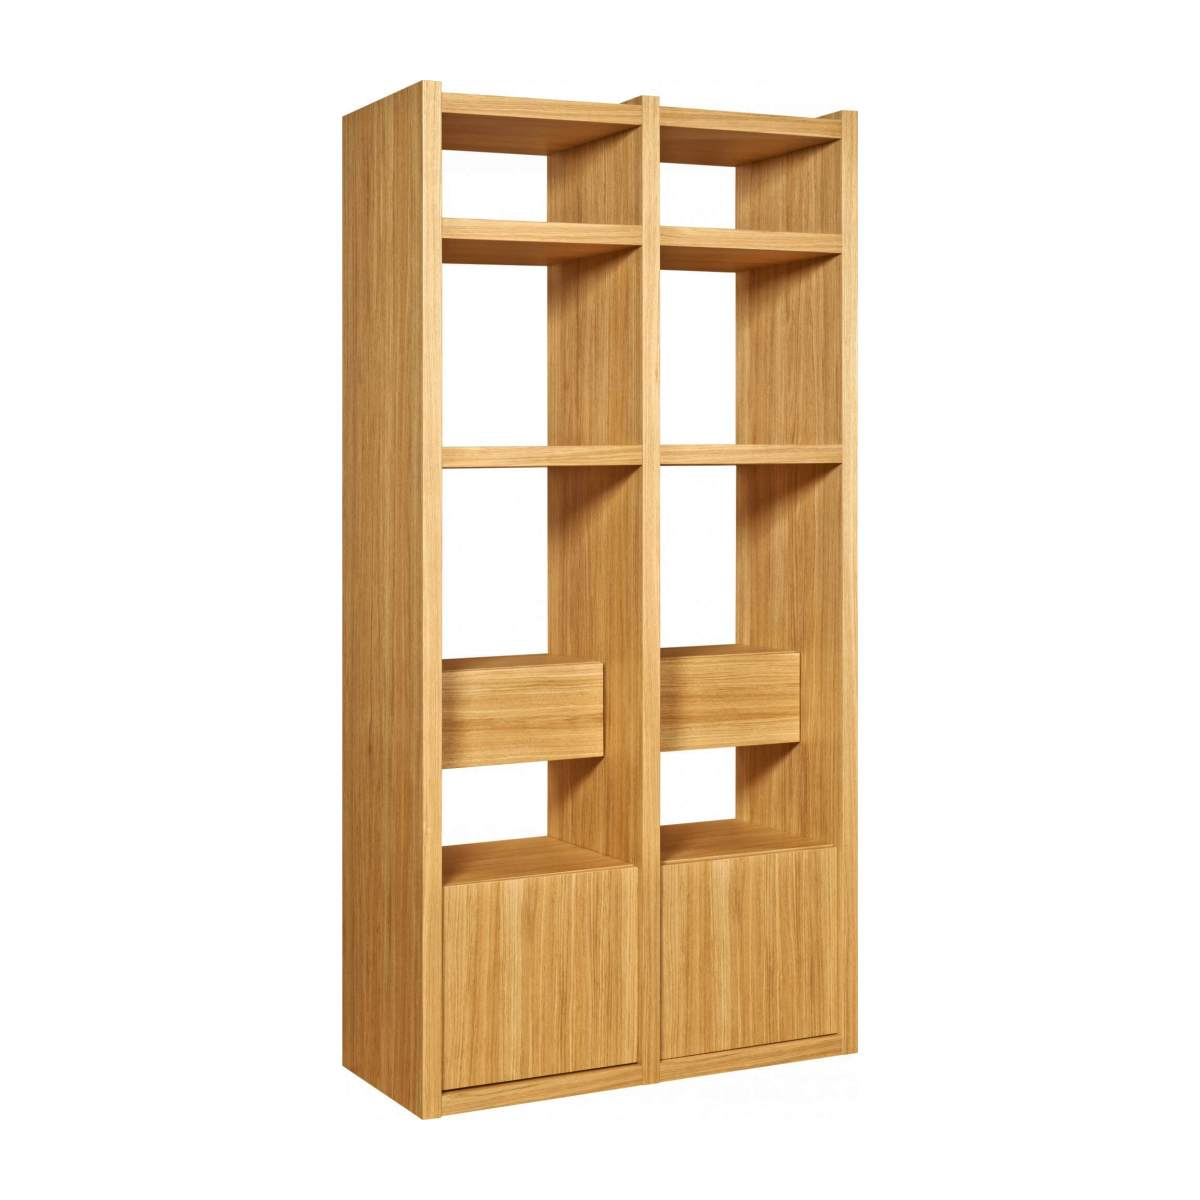 Extension for small oak shelving unit n°3